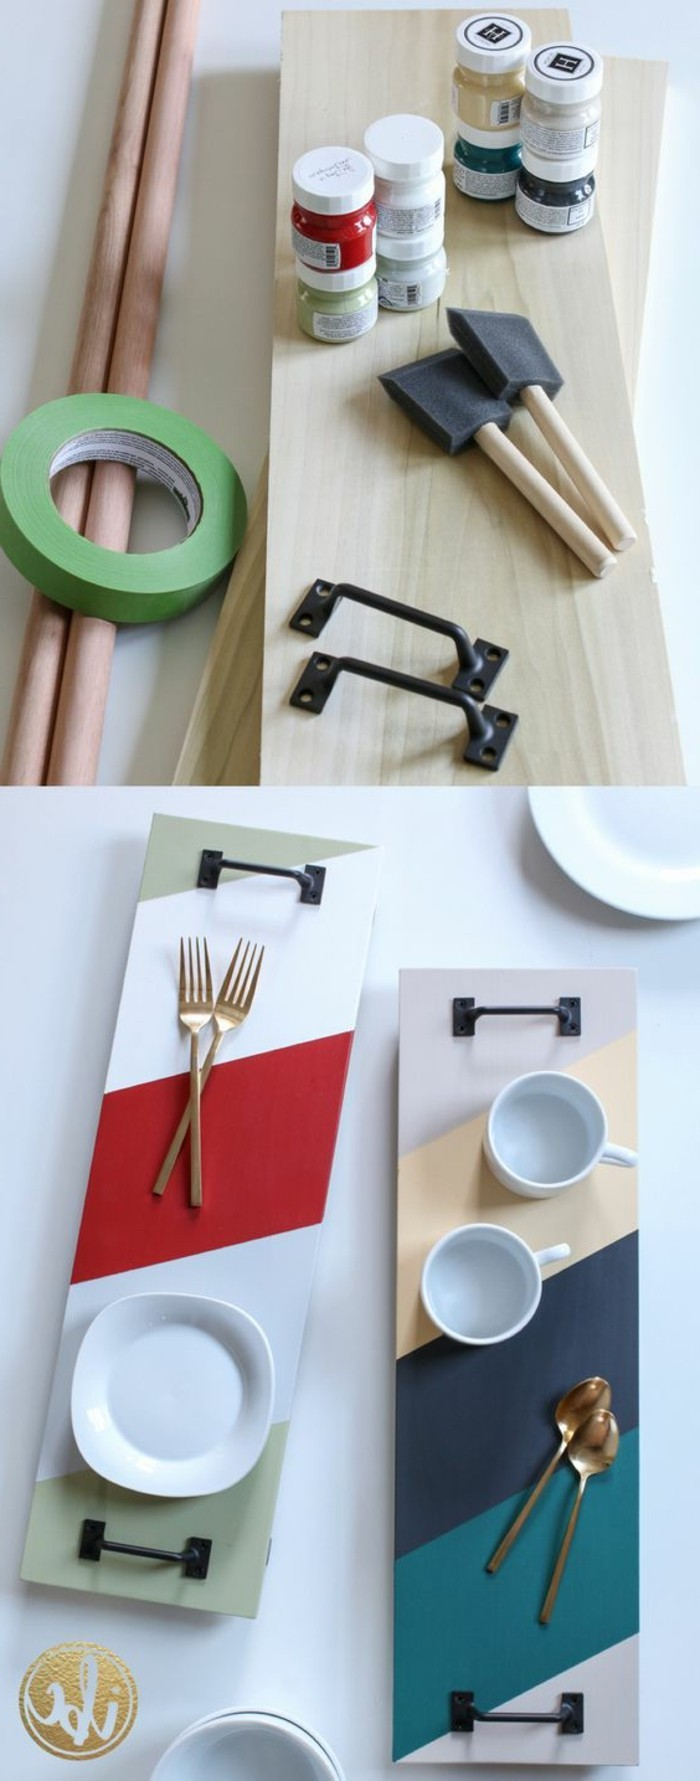 serving trays made from pieces of wood, with black metal handles, and multicolored stripes of paint, cute gift ideas, images showing the needed materials